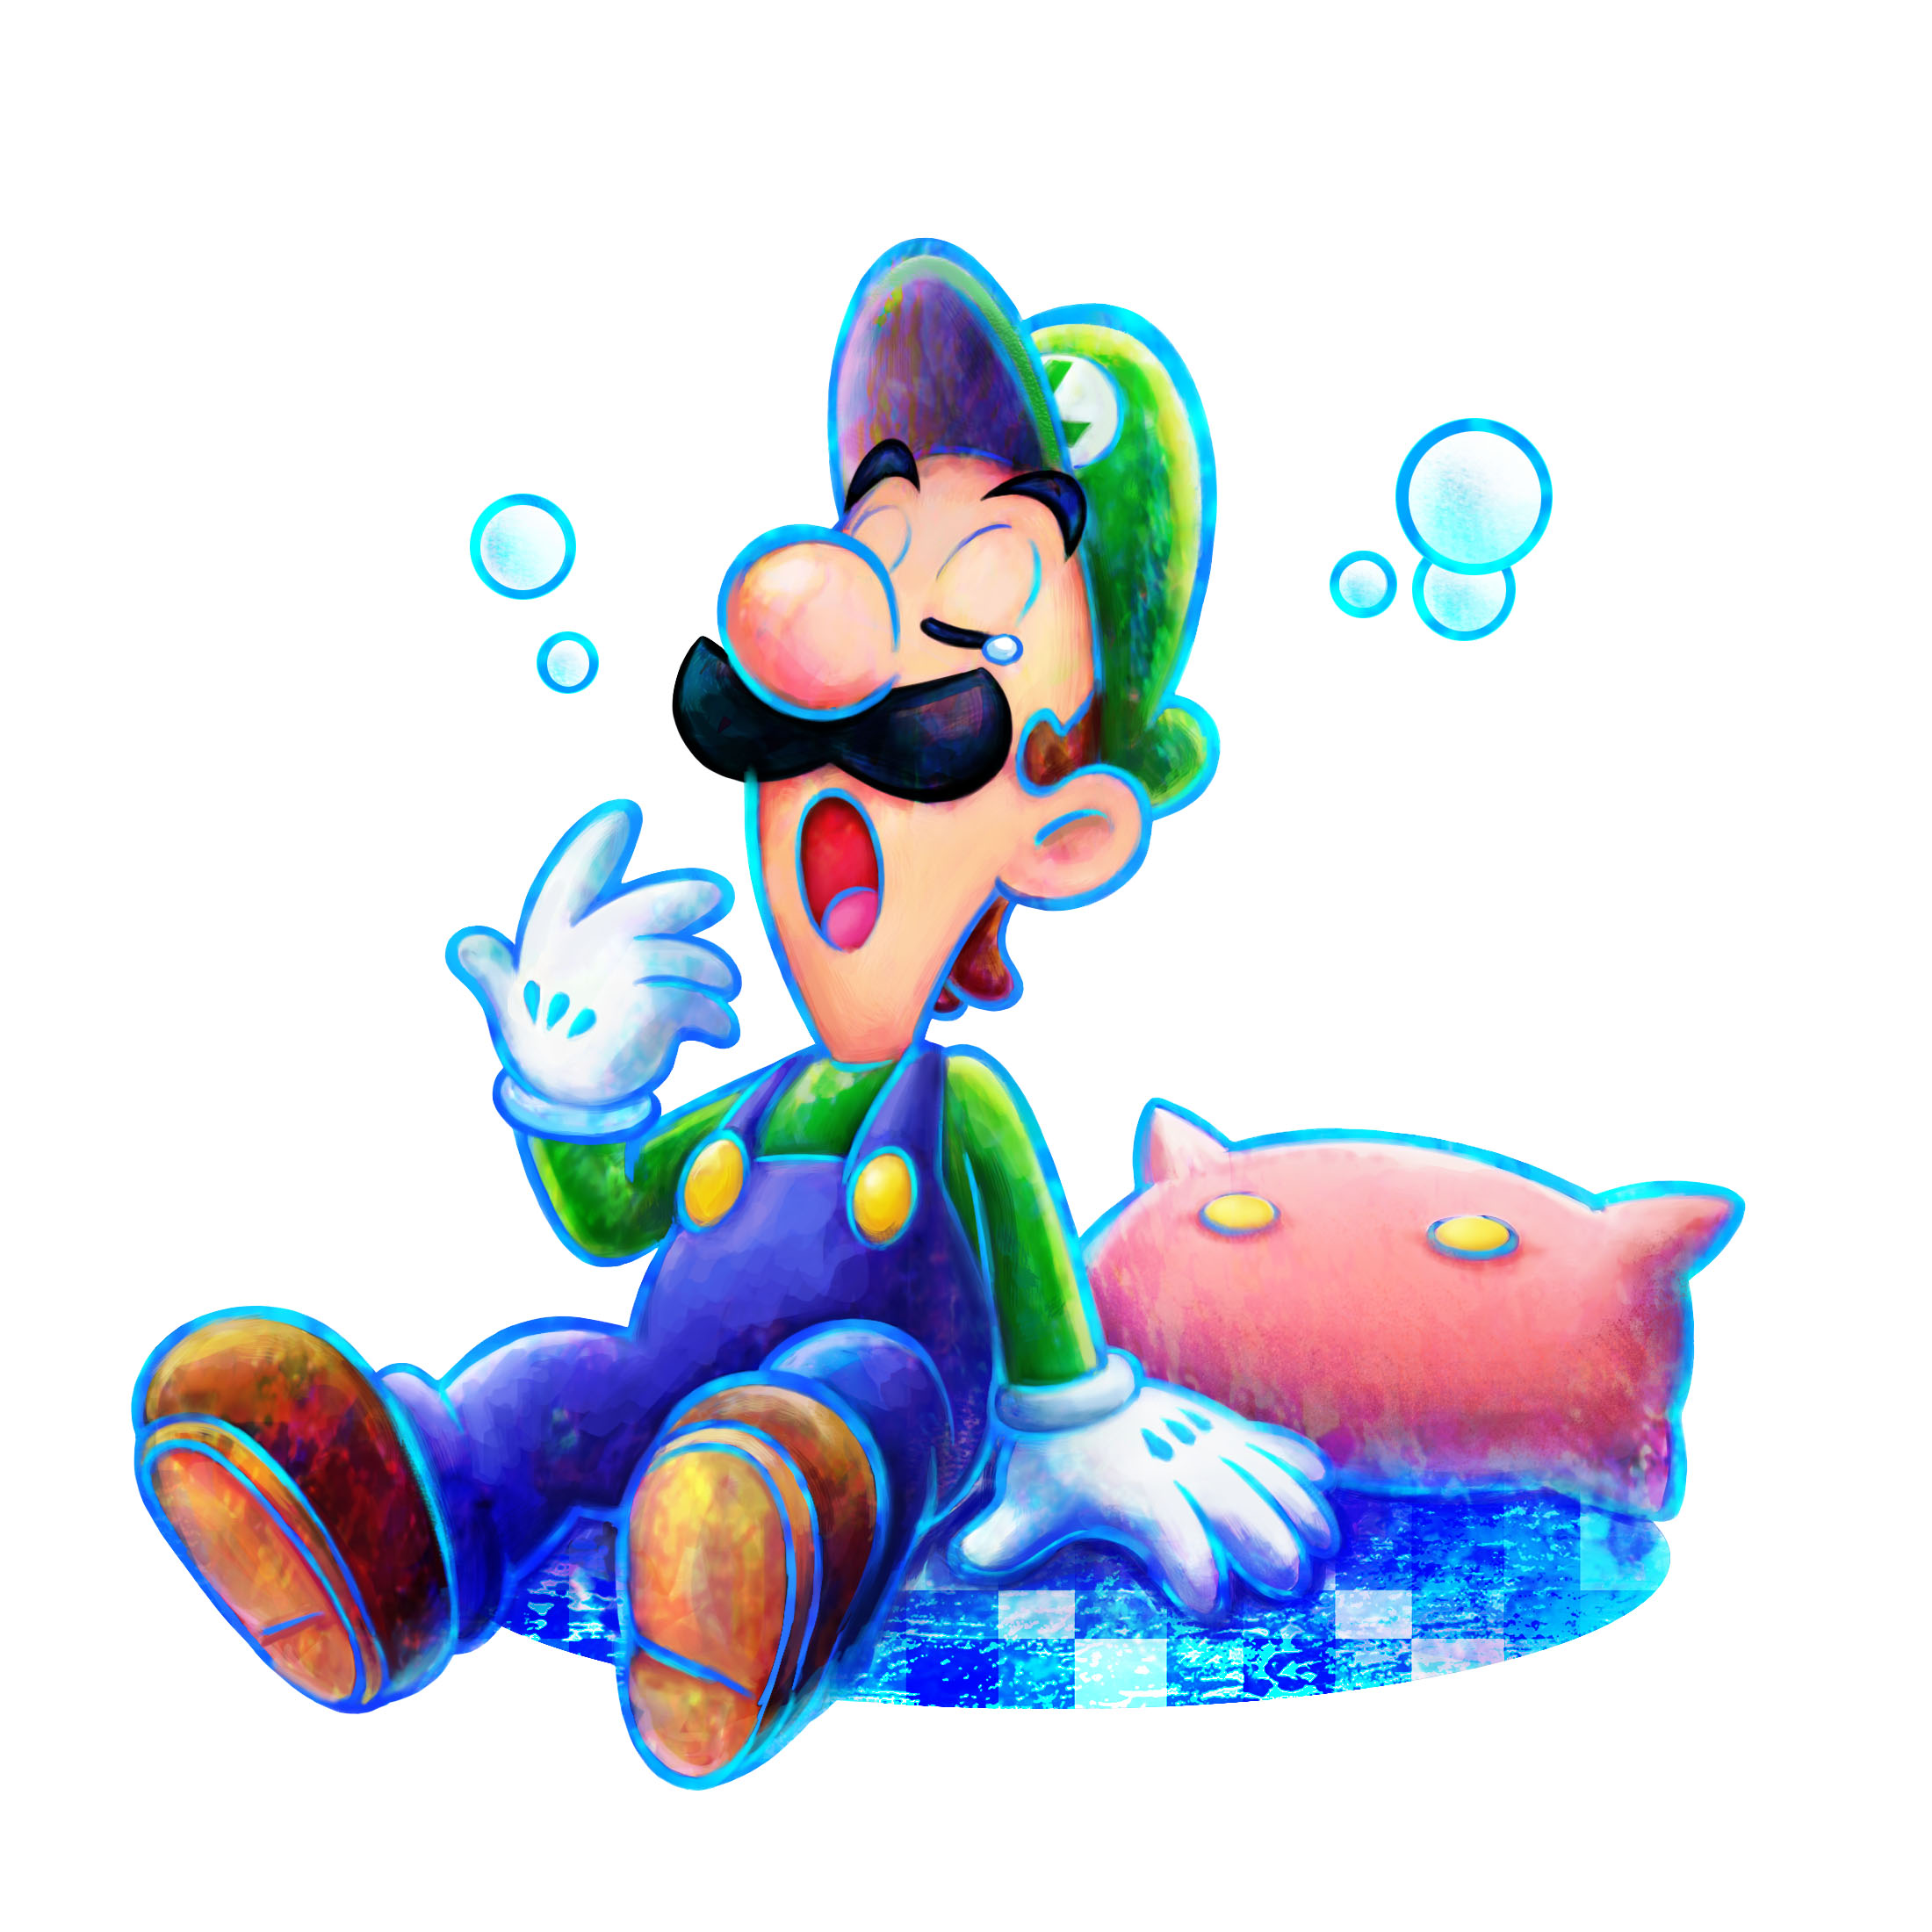 Maybe the constant exposition is why Luigi's able to fall asleep so easily?